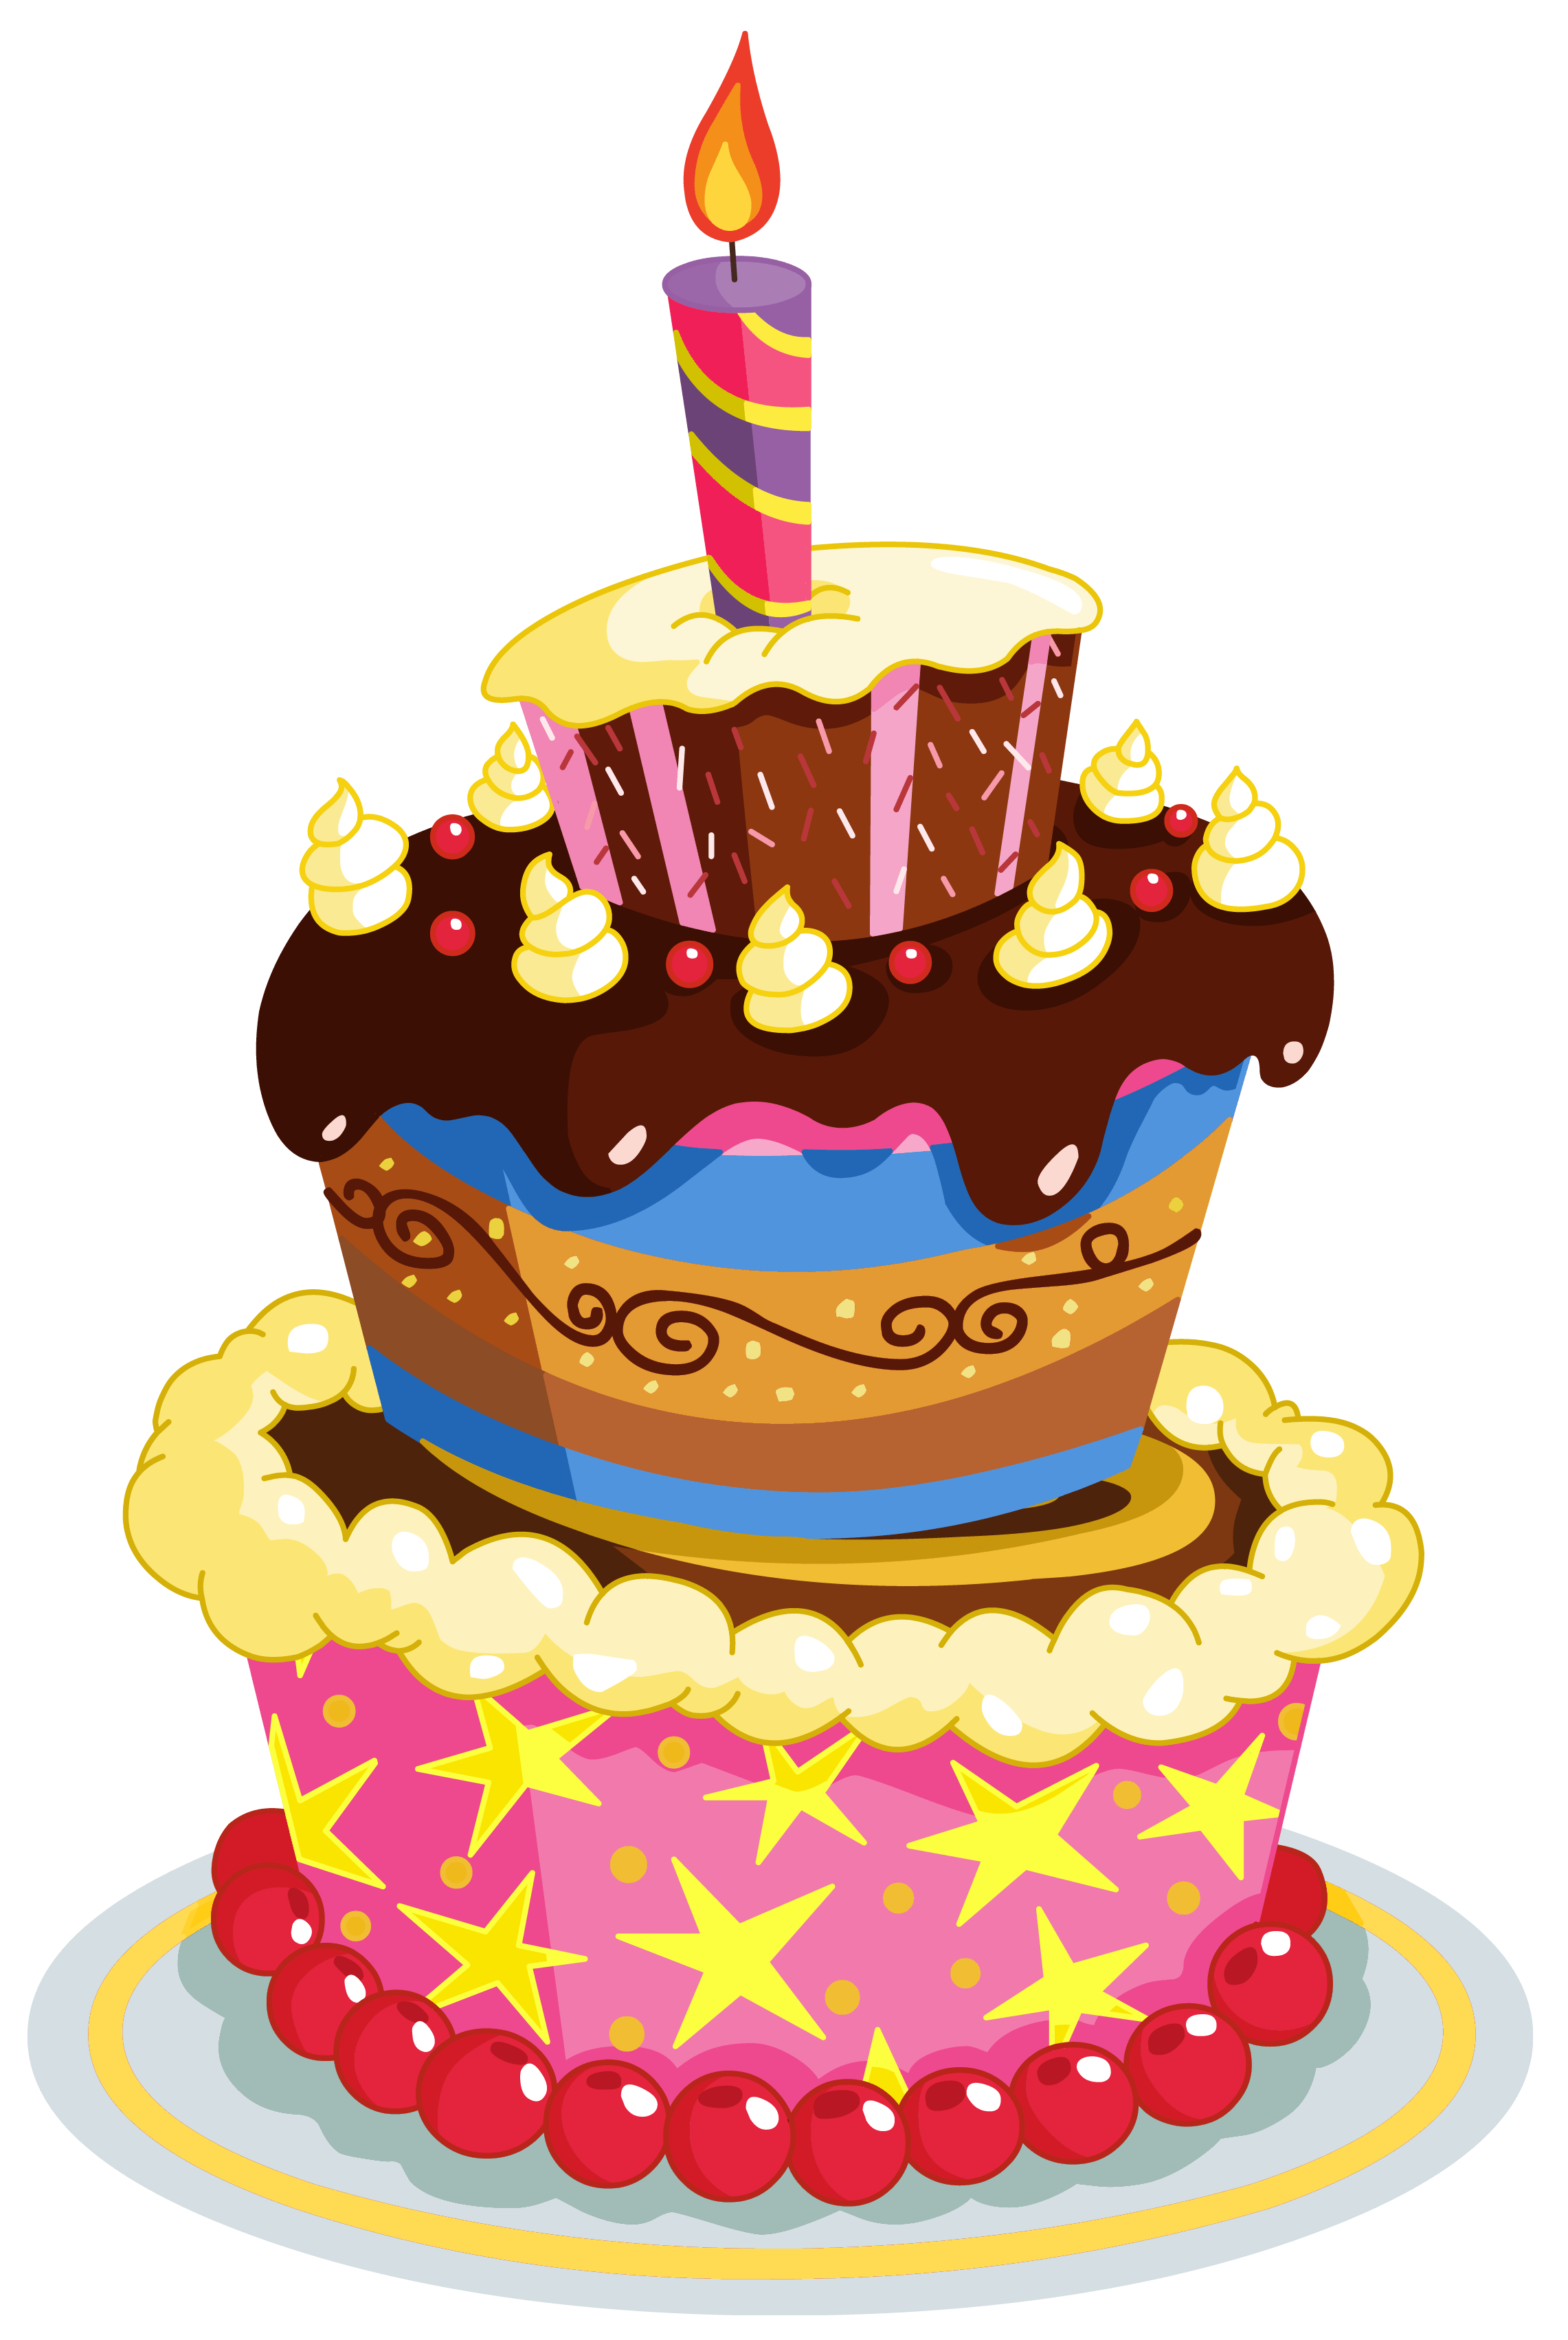 Cake Png Images Free Download Birthday Cake Png Images